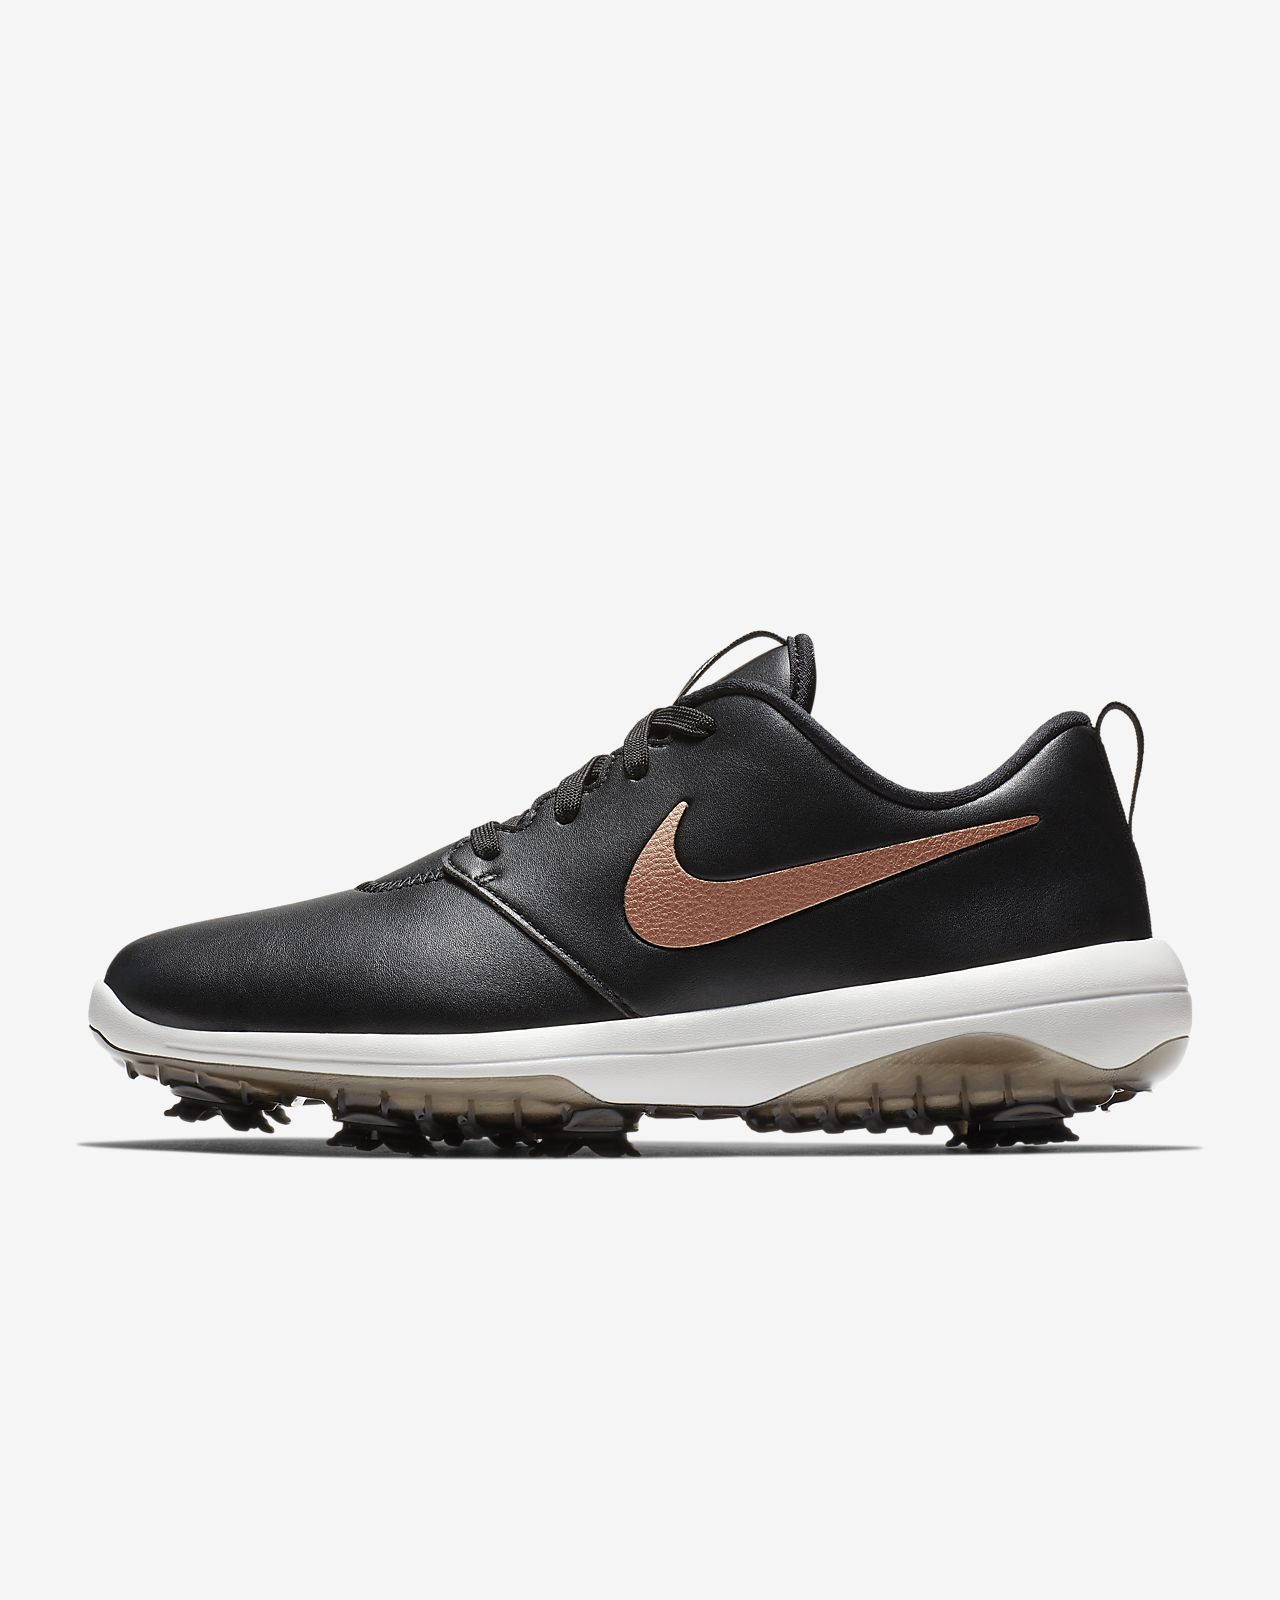 2817f9770ecd3 Nike Roshe G Tour Women s Golf Shoe. Nike.com